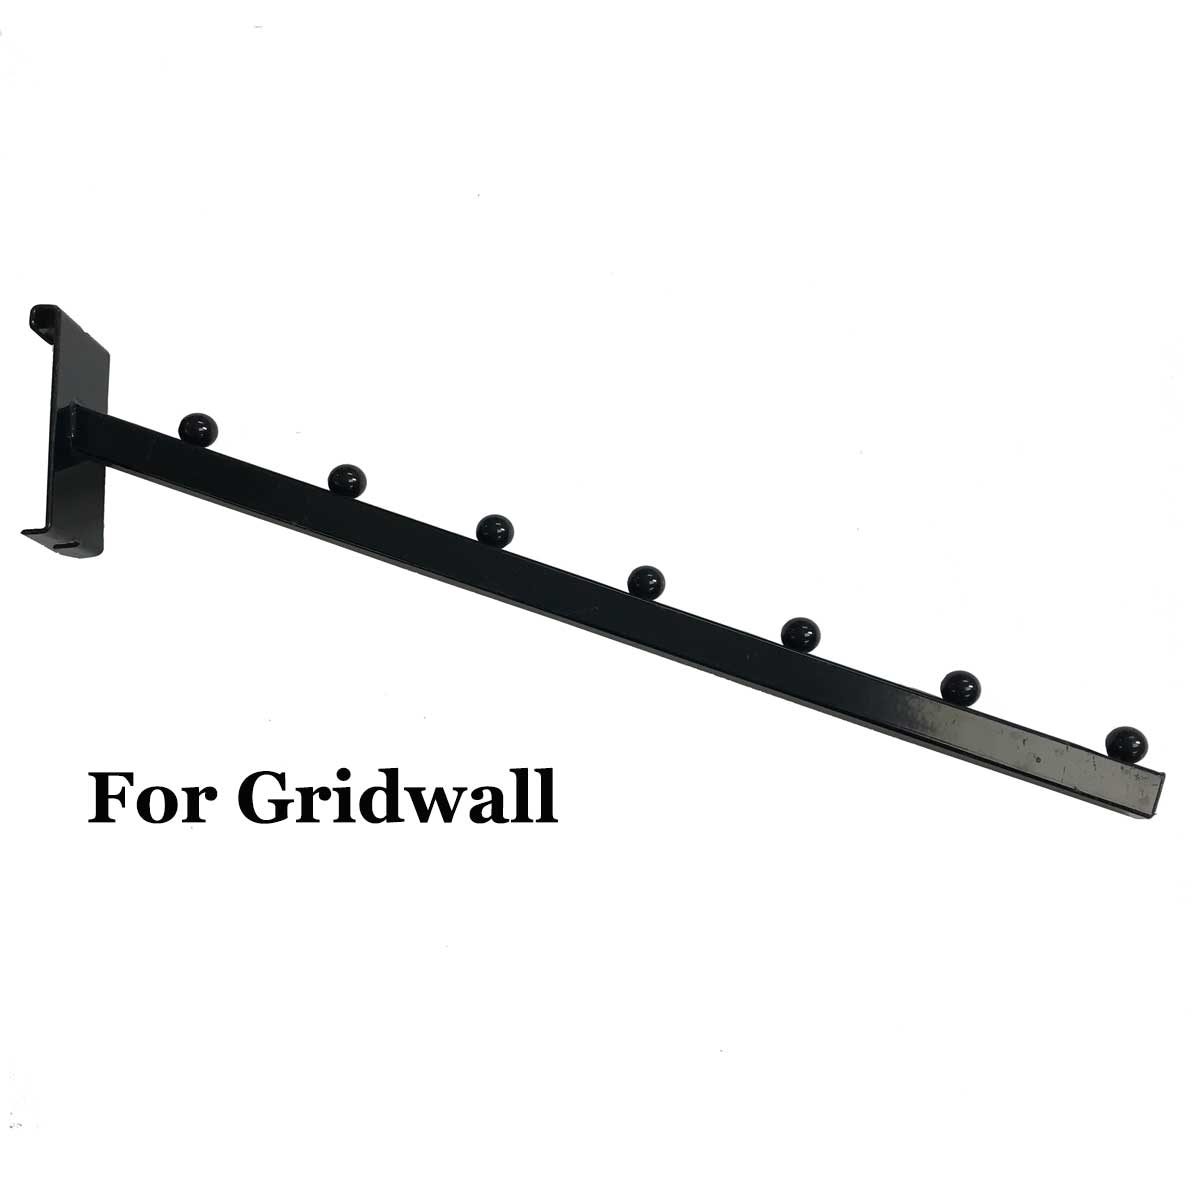 Wholesale Display & Merchandising (Many are Free) Gridwall Faceout Seven Ball (Good Used Condtition) -